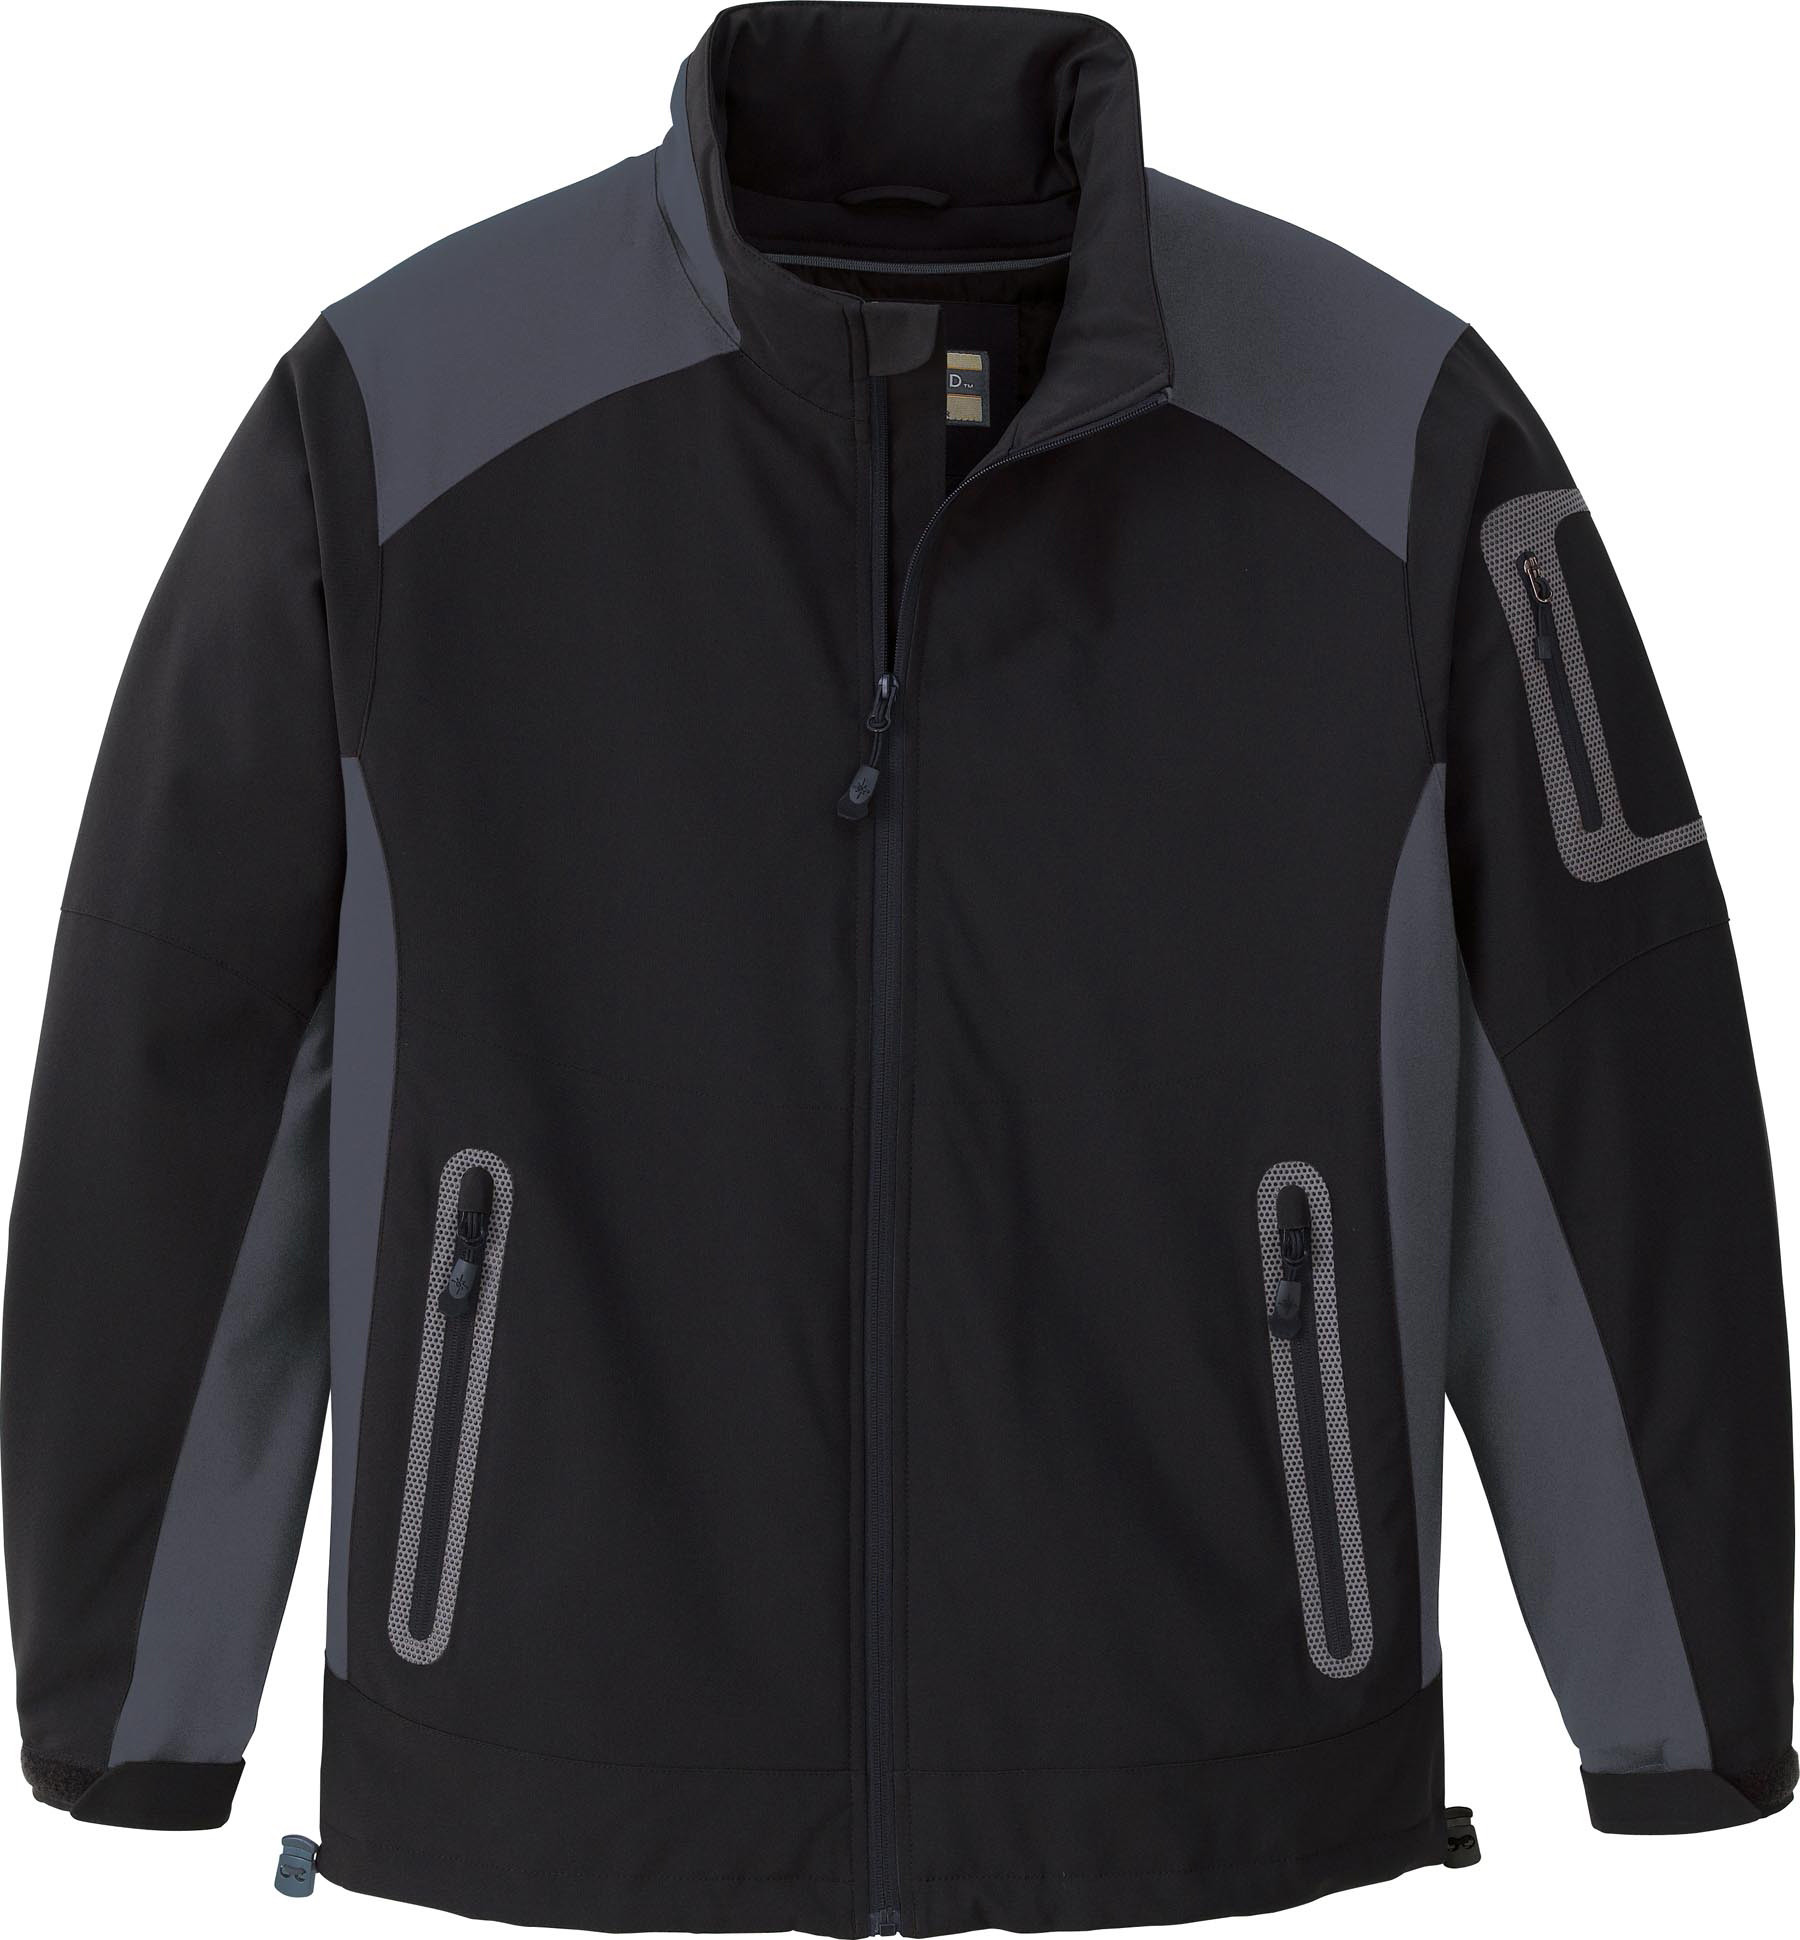 Ash City Performance Jackets 88149 - Men's Insulated ...